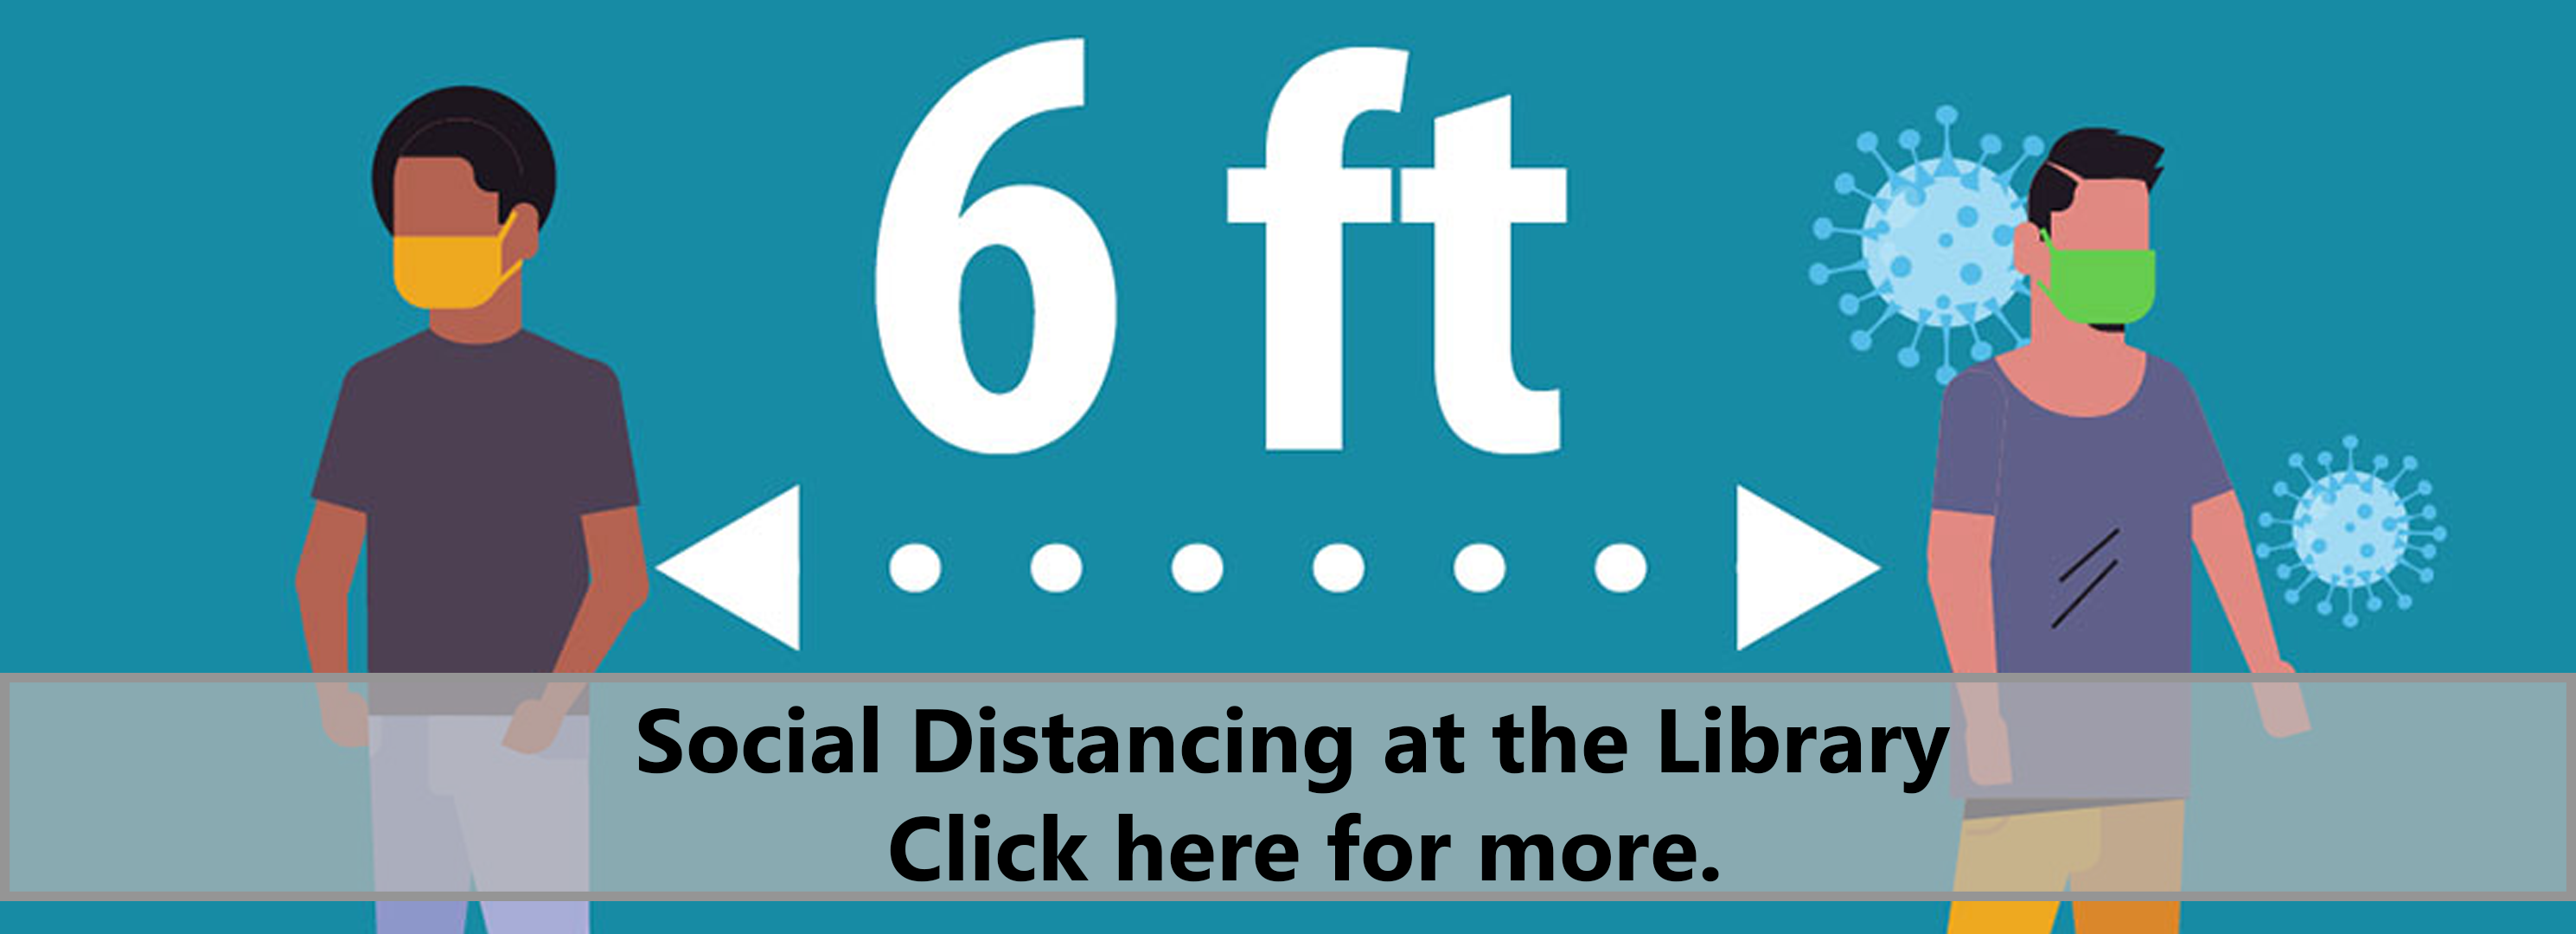 Social distancing at the library. Click here for more.